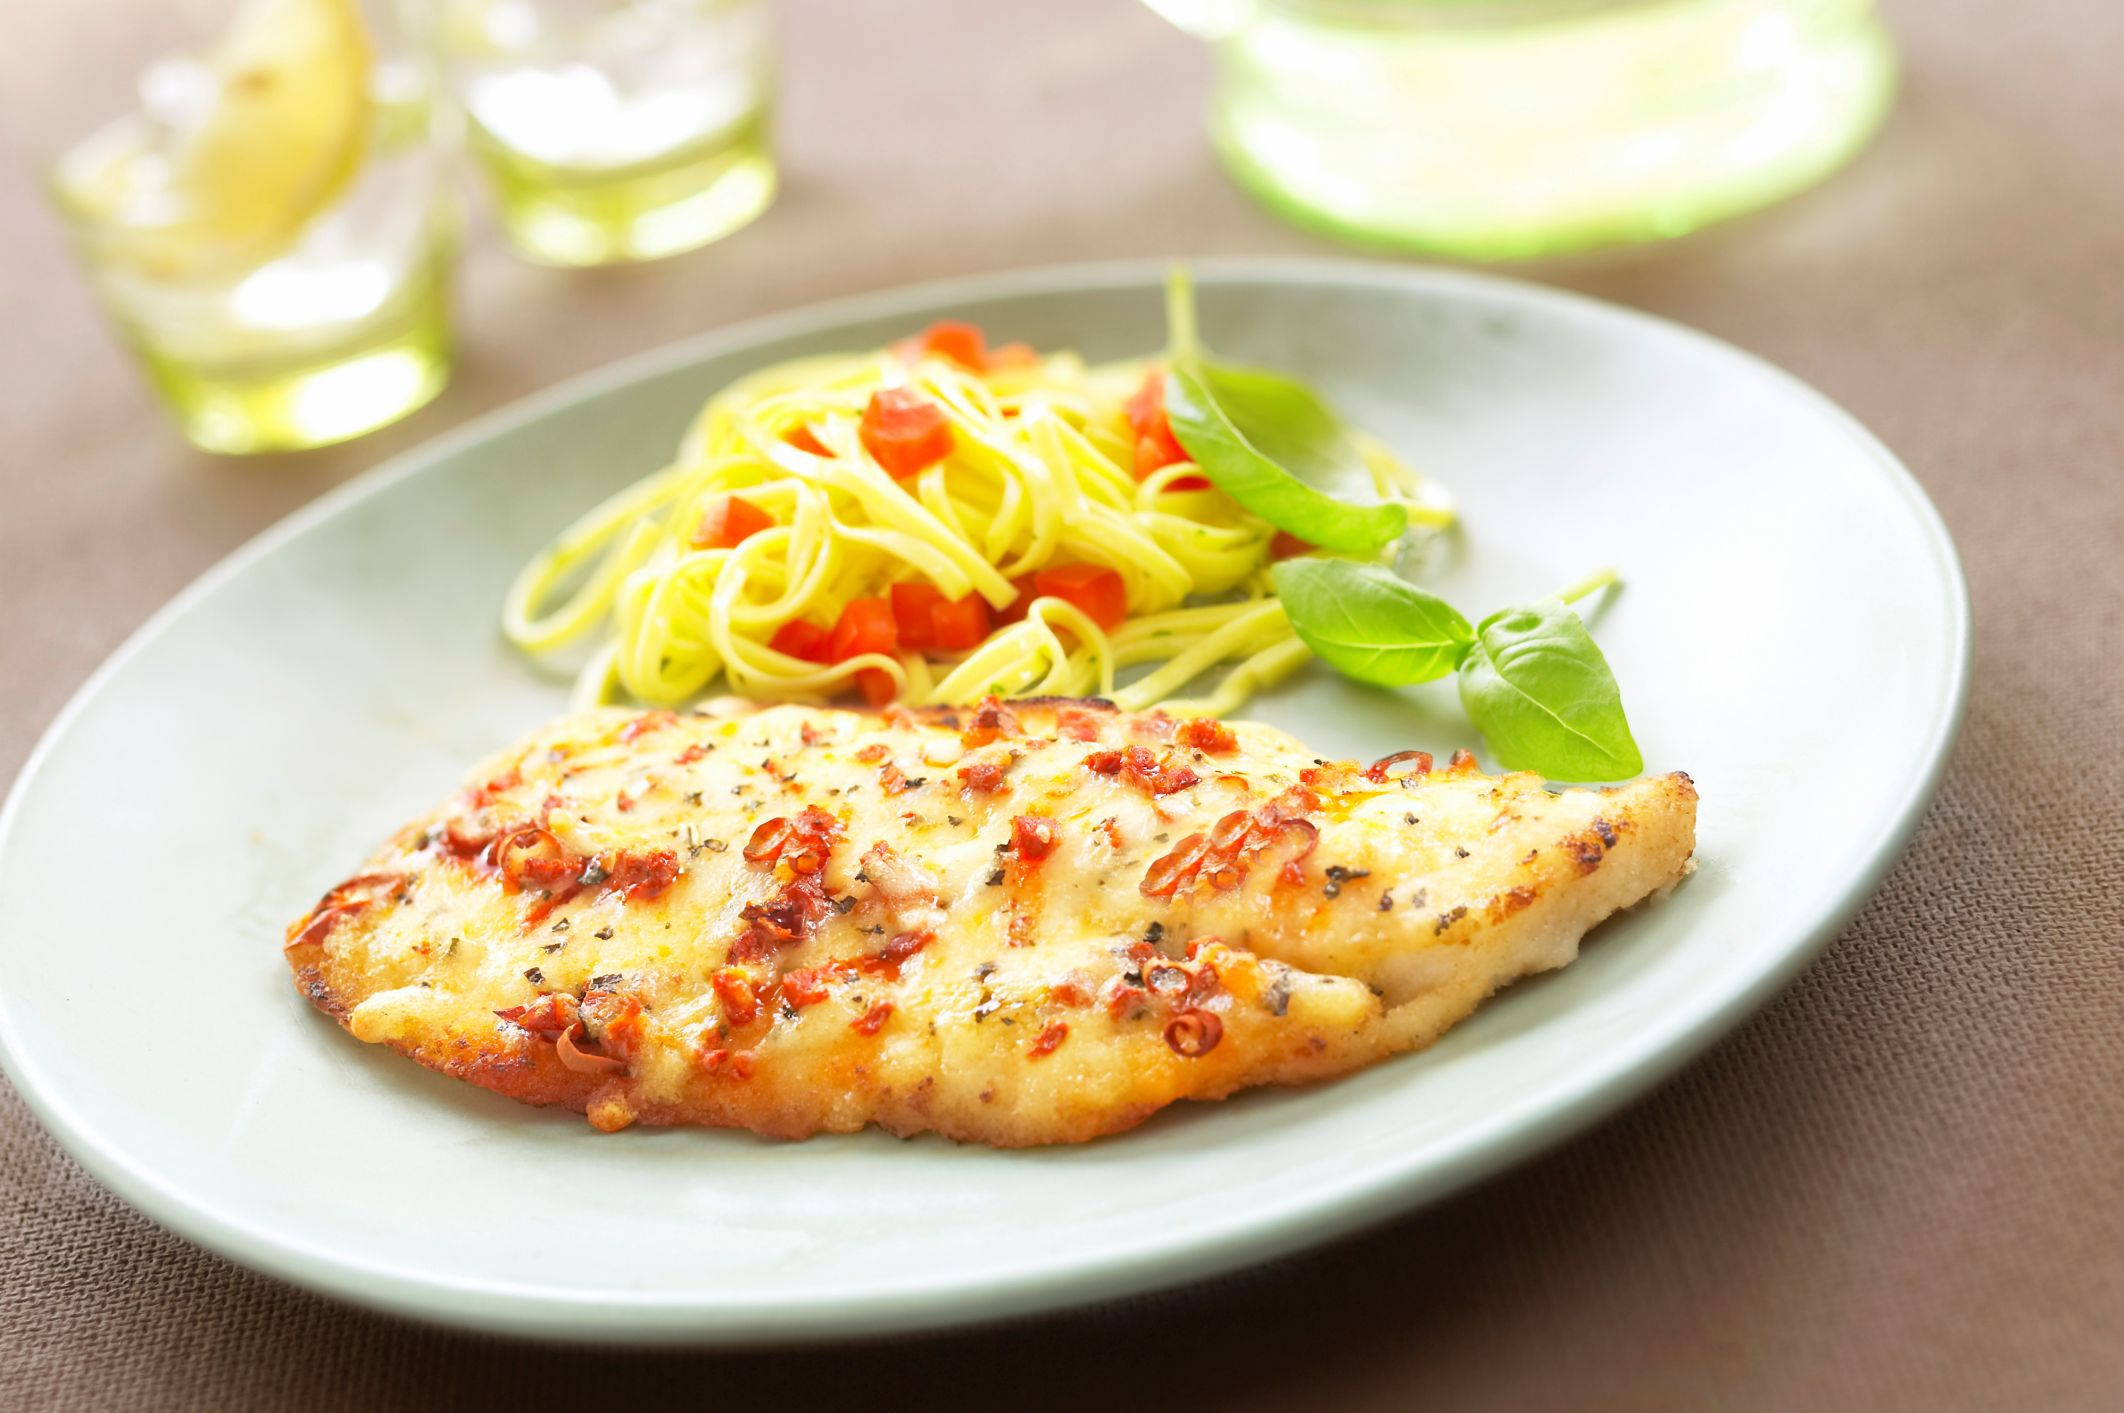 Broiled Tilapia Fillets With Lemon And Butter